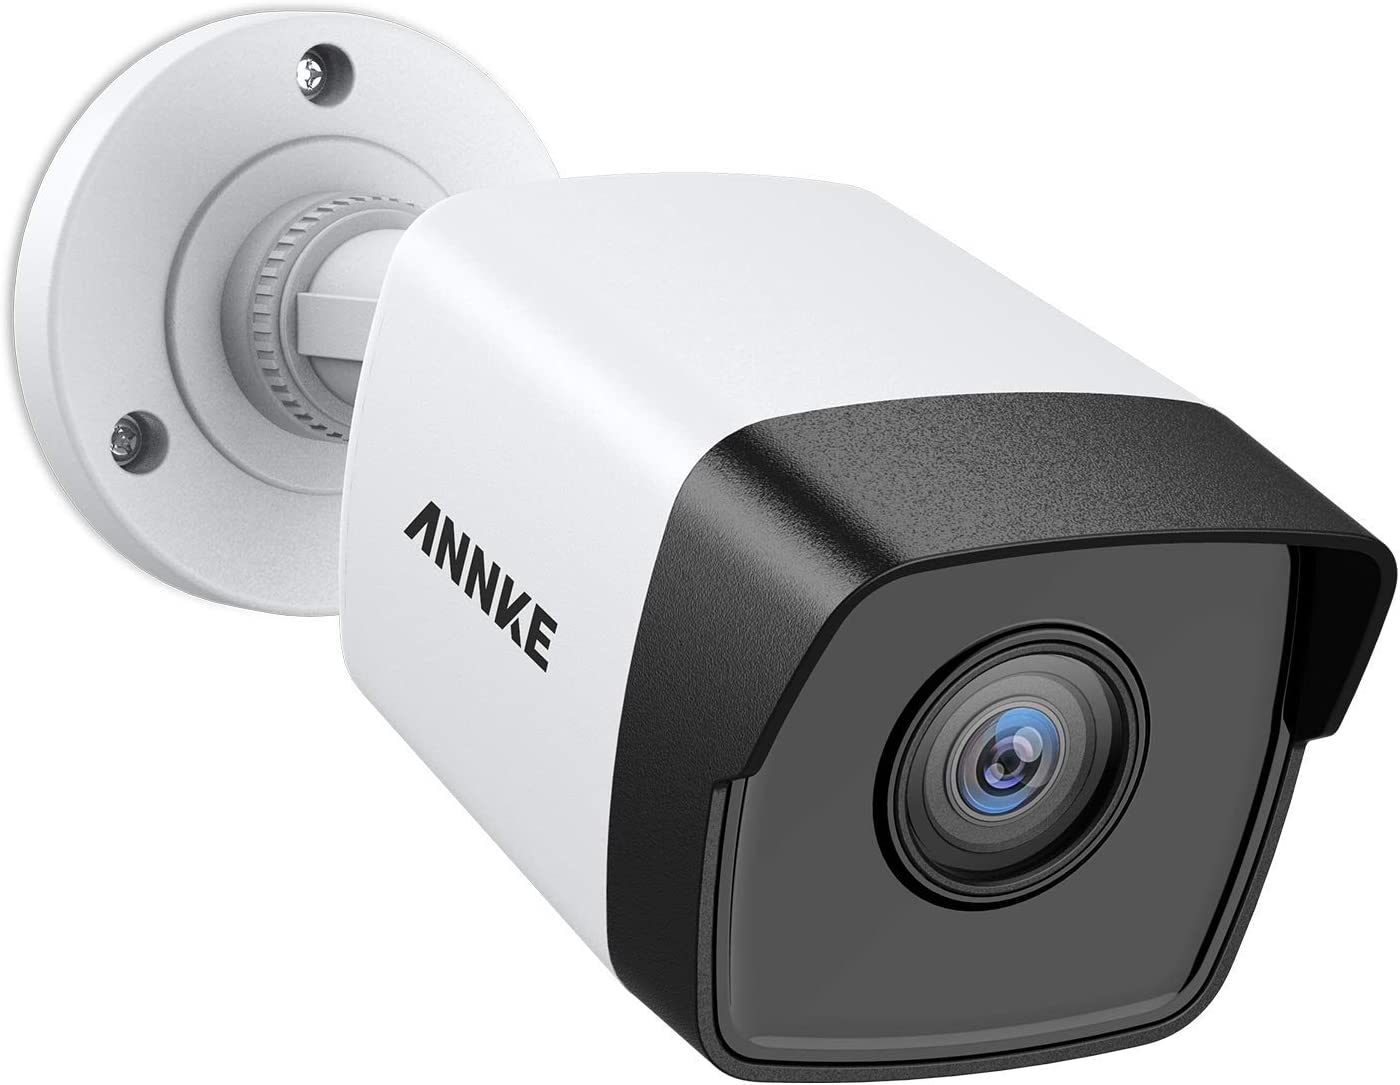 ANNKE 5MP PoE Security Camera 2560x1920 Super HD Bullet IP Cam, 100ft EXIR Night Vision, H.265+ Video Compression, Onvif Compliant, IP67 Weatherproof for Outdoor Indoor (Renewed)